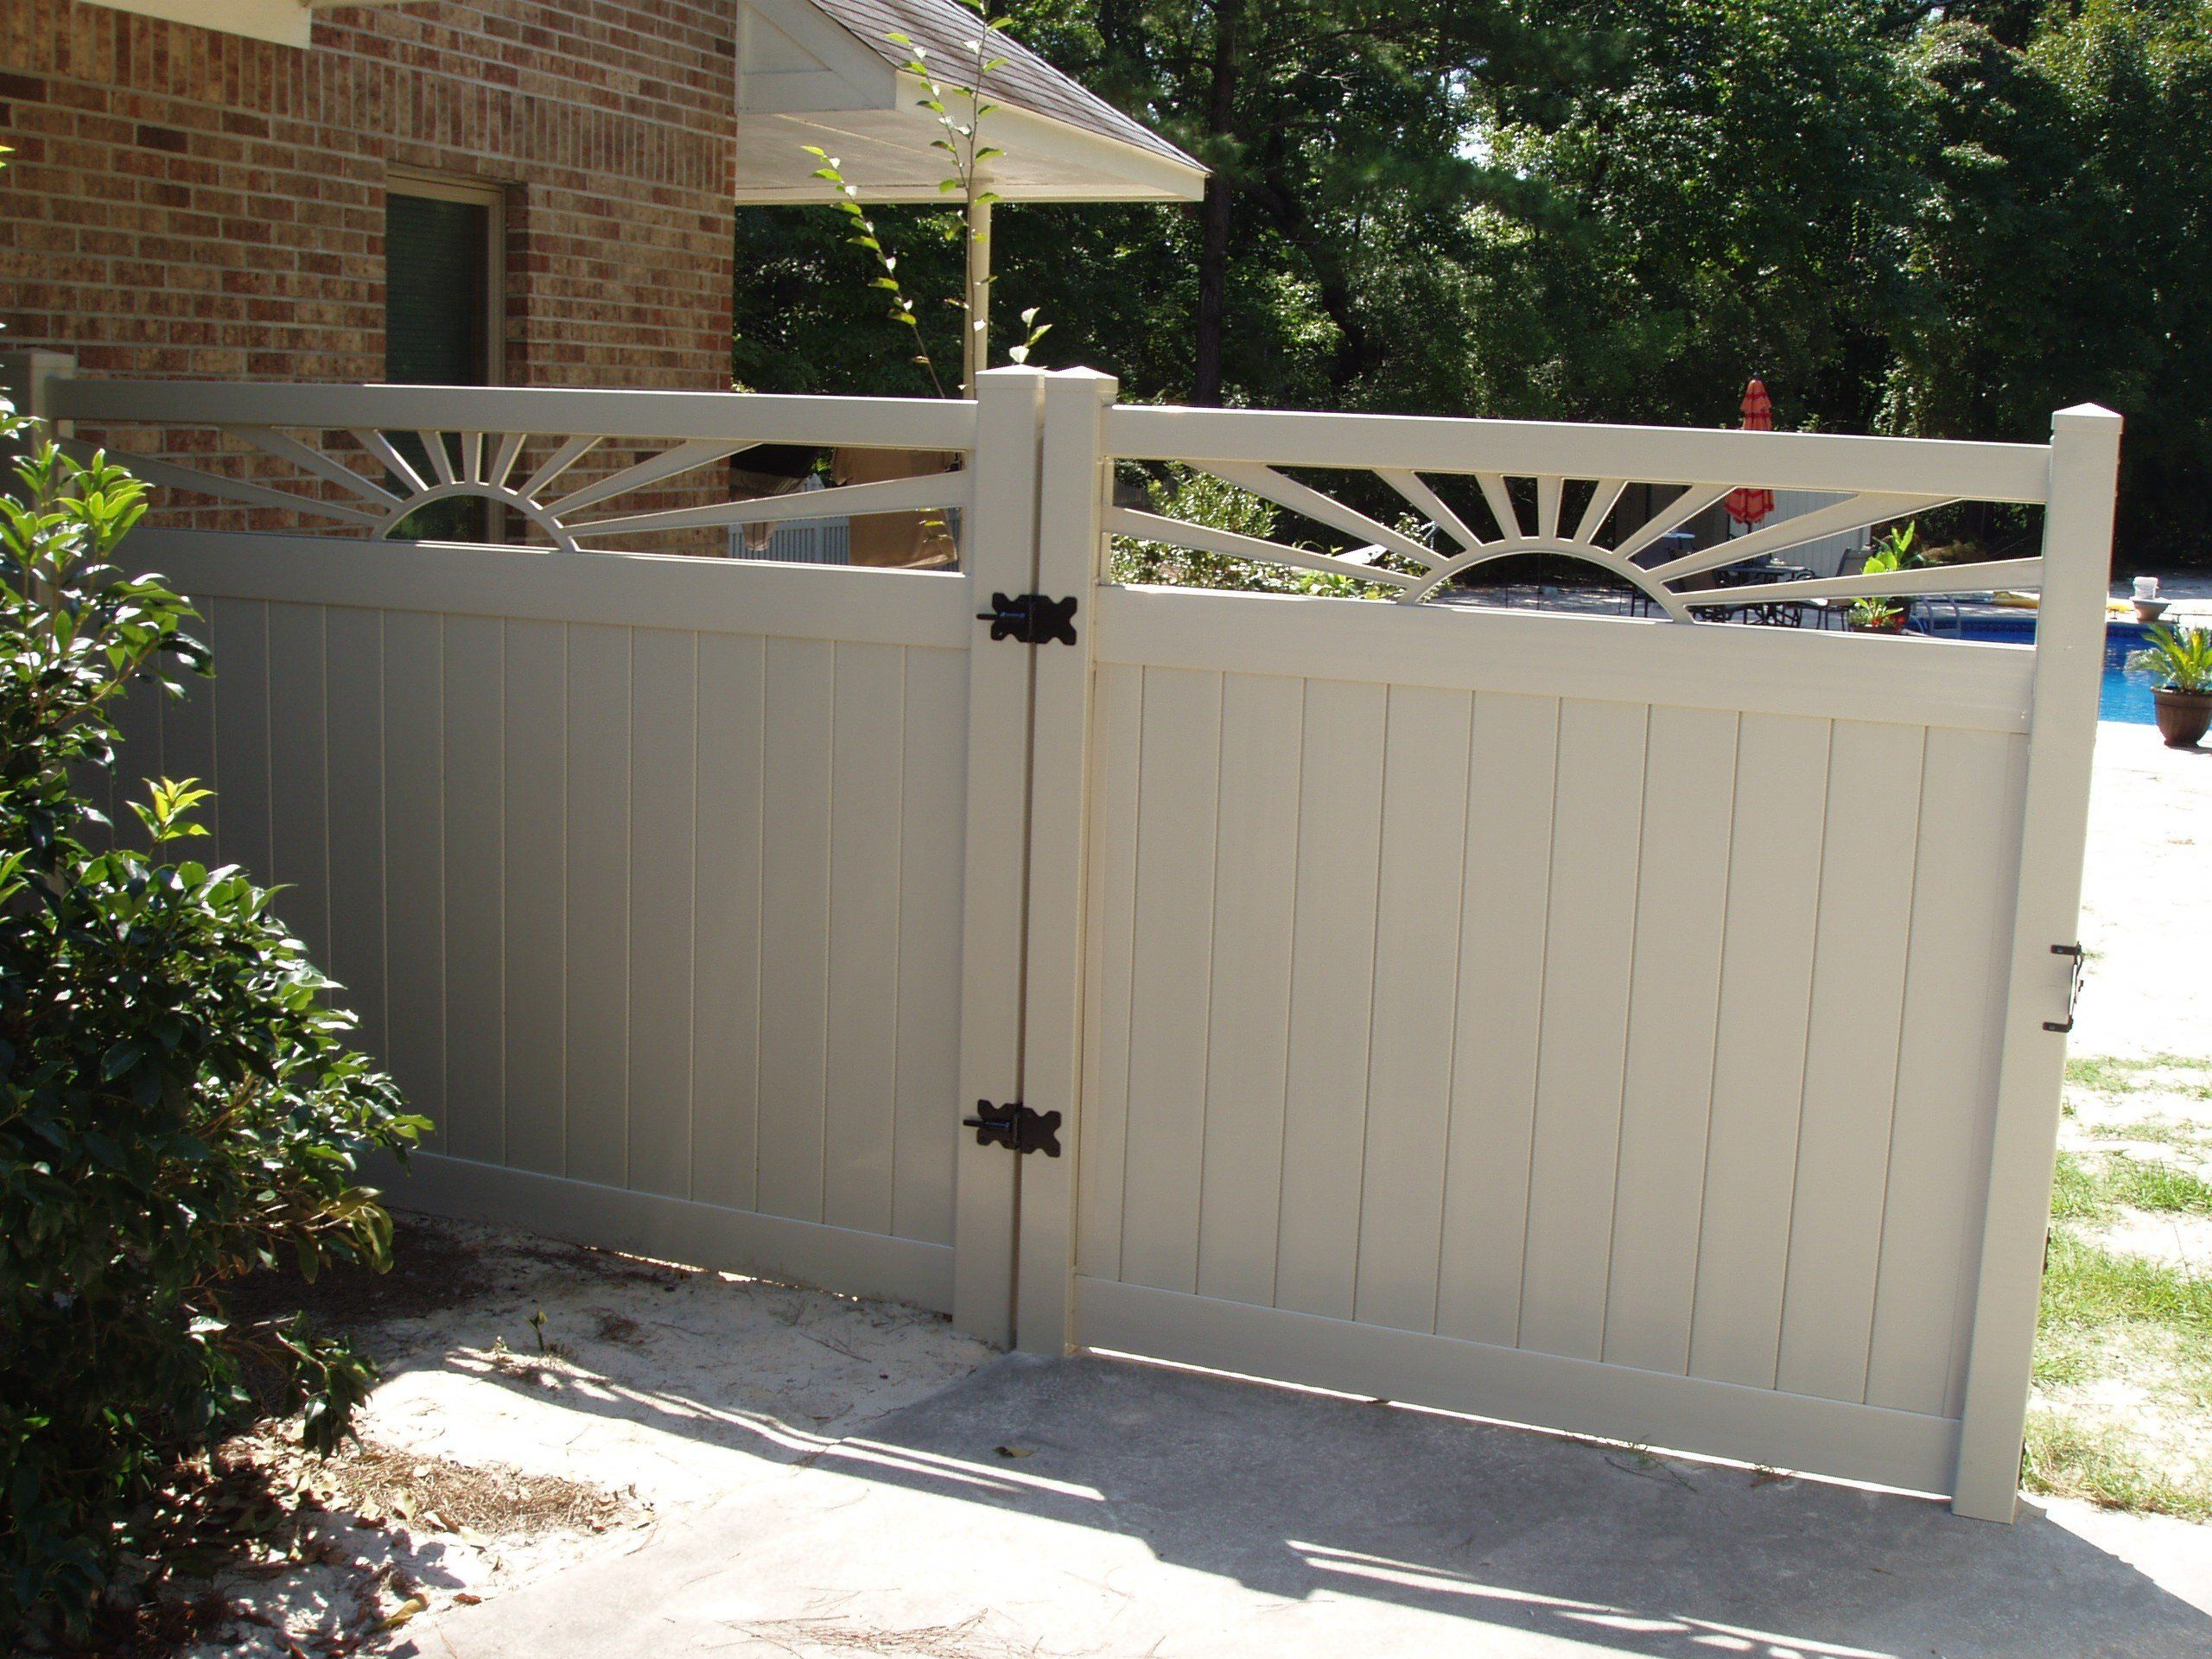 37 Stylish Privacy Fence Ideas for Outdoor